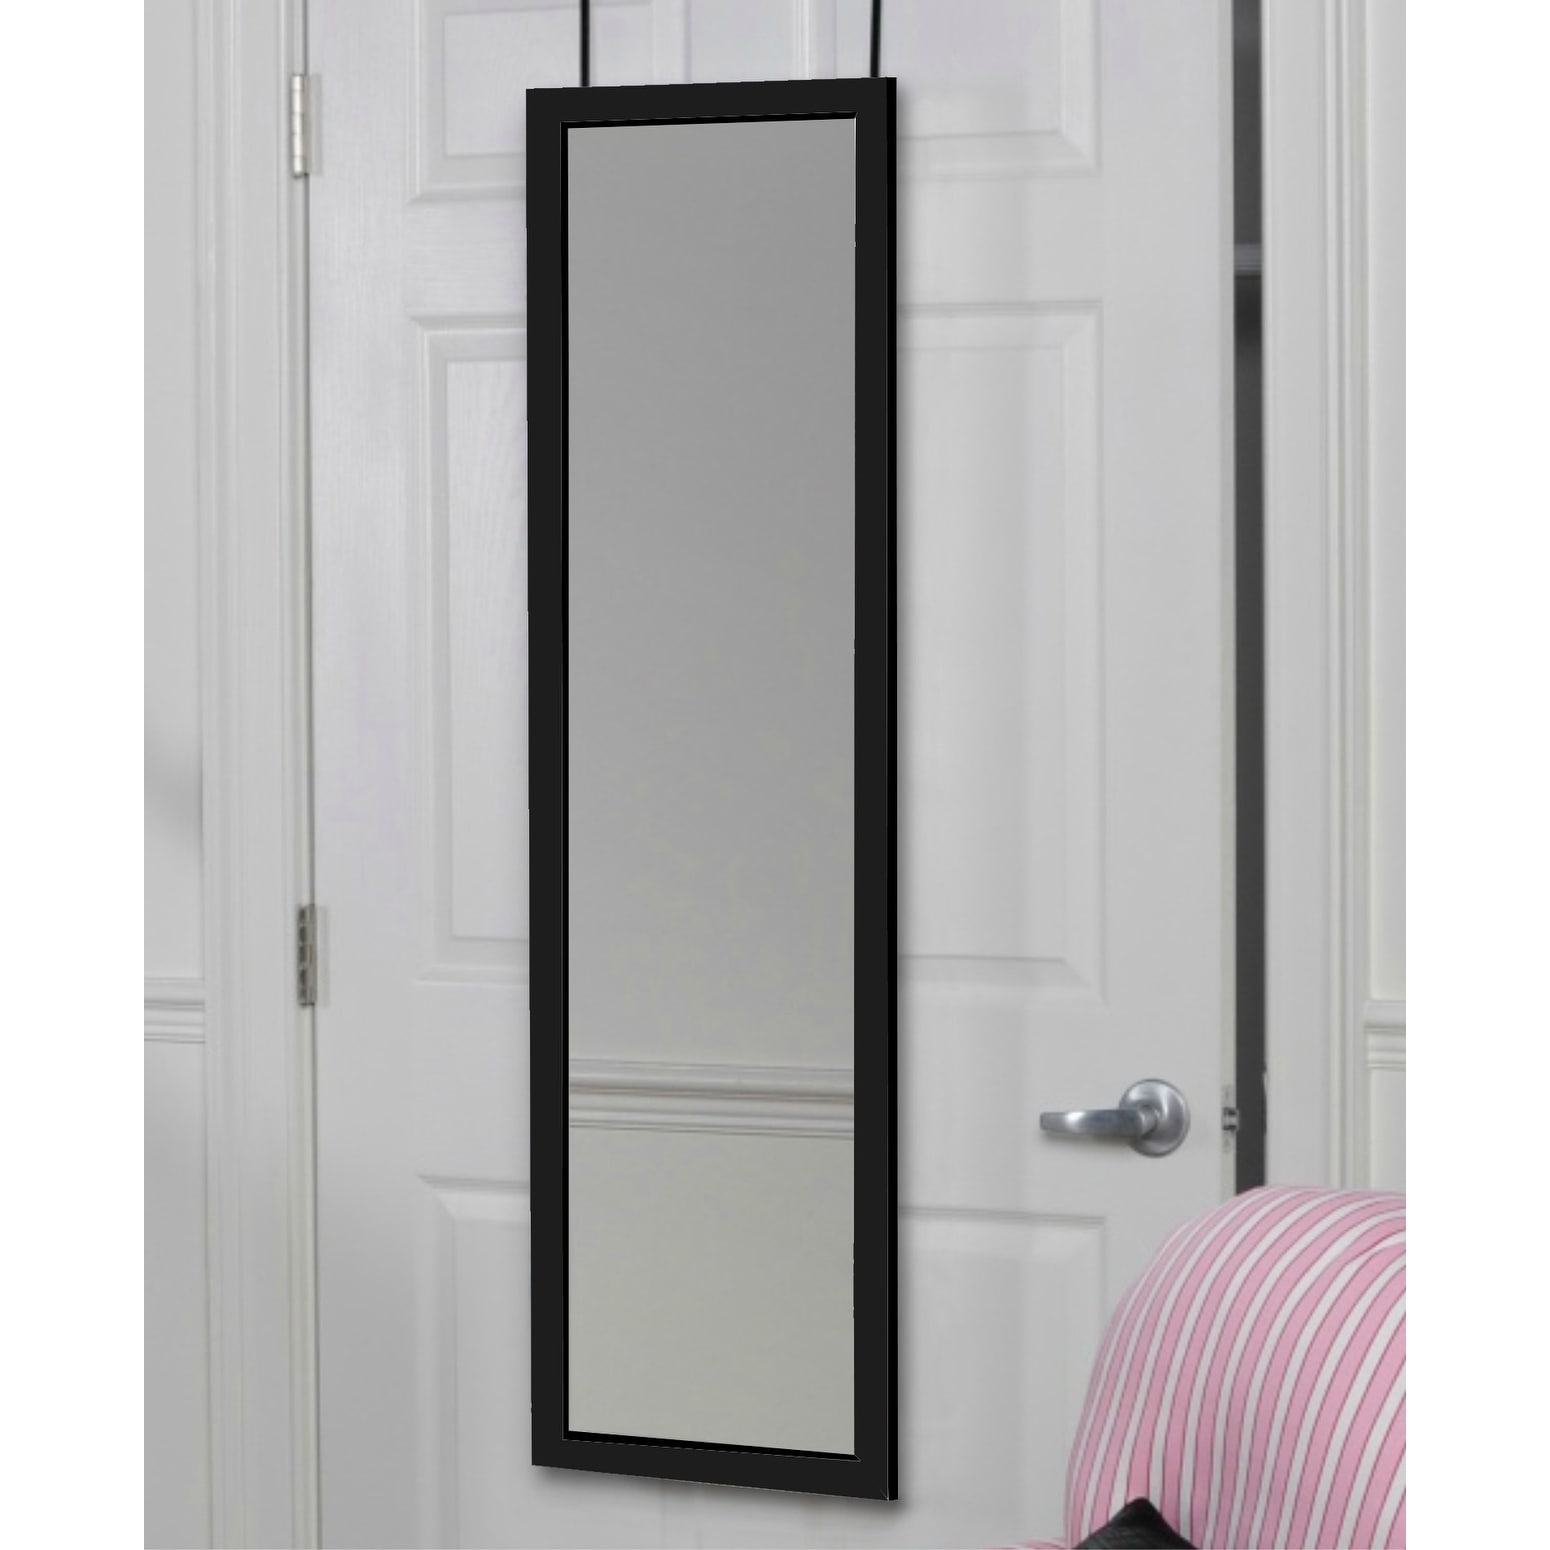 Mirrotek Over The Door Wall Mounted Full Length Dressing Mirror